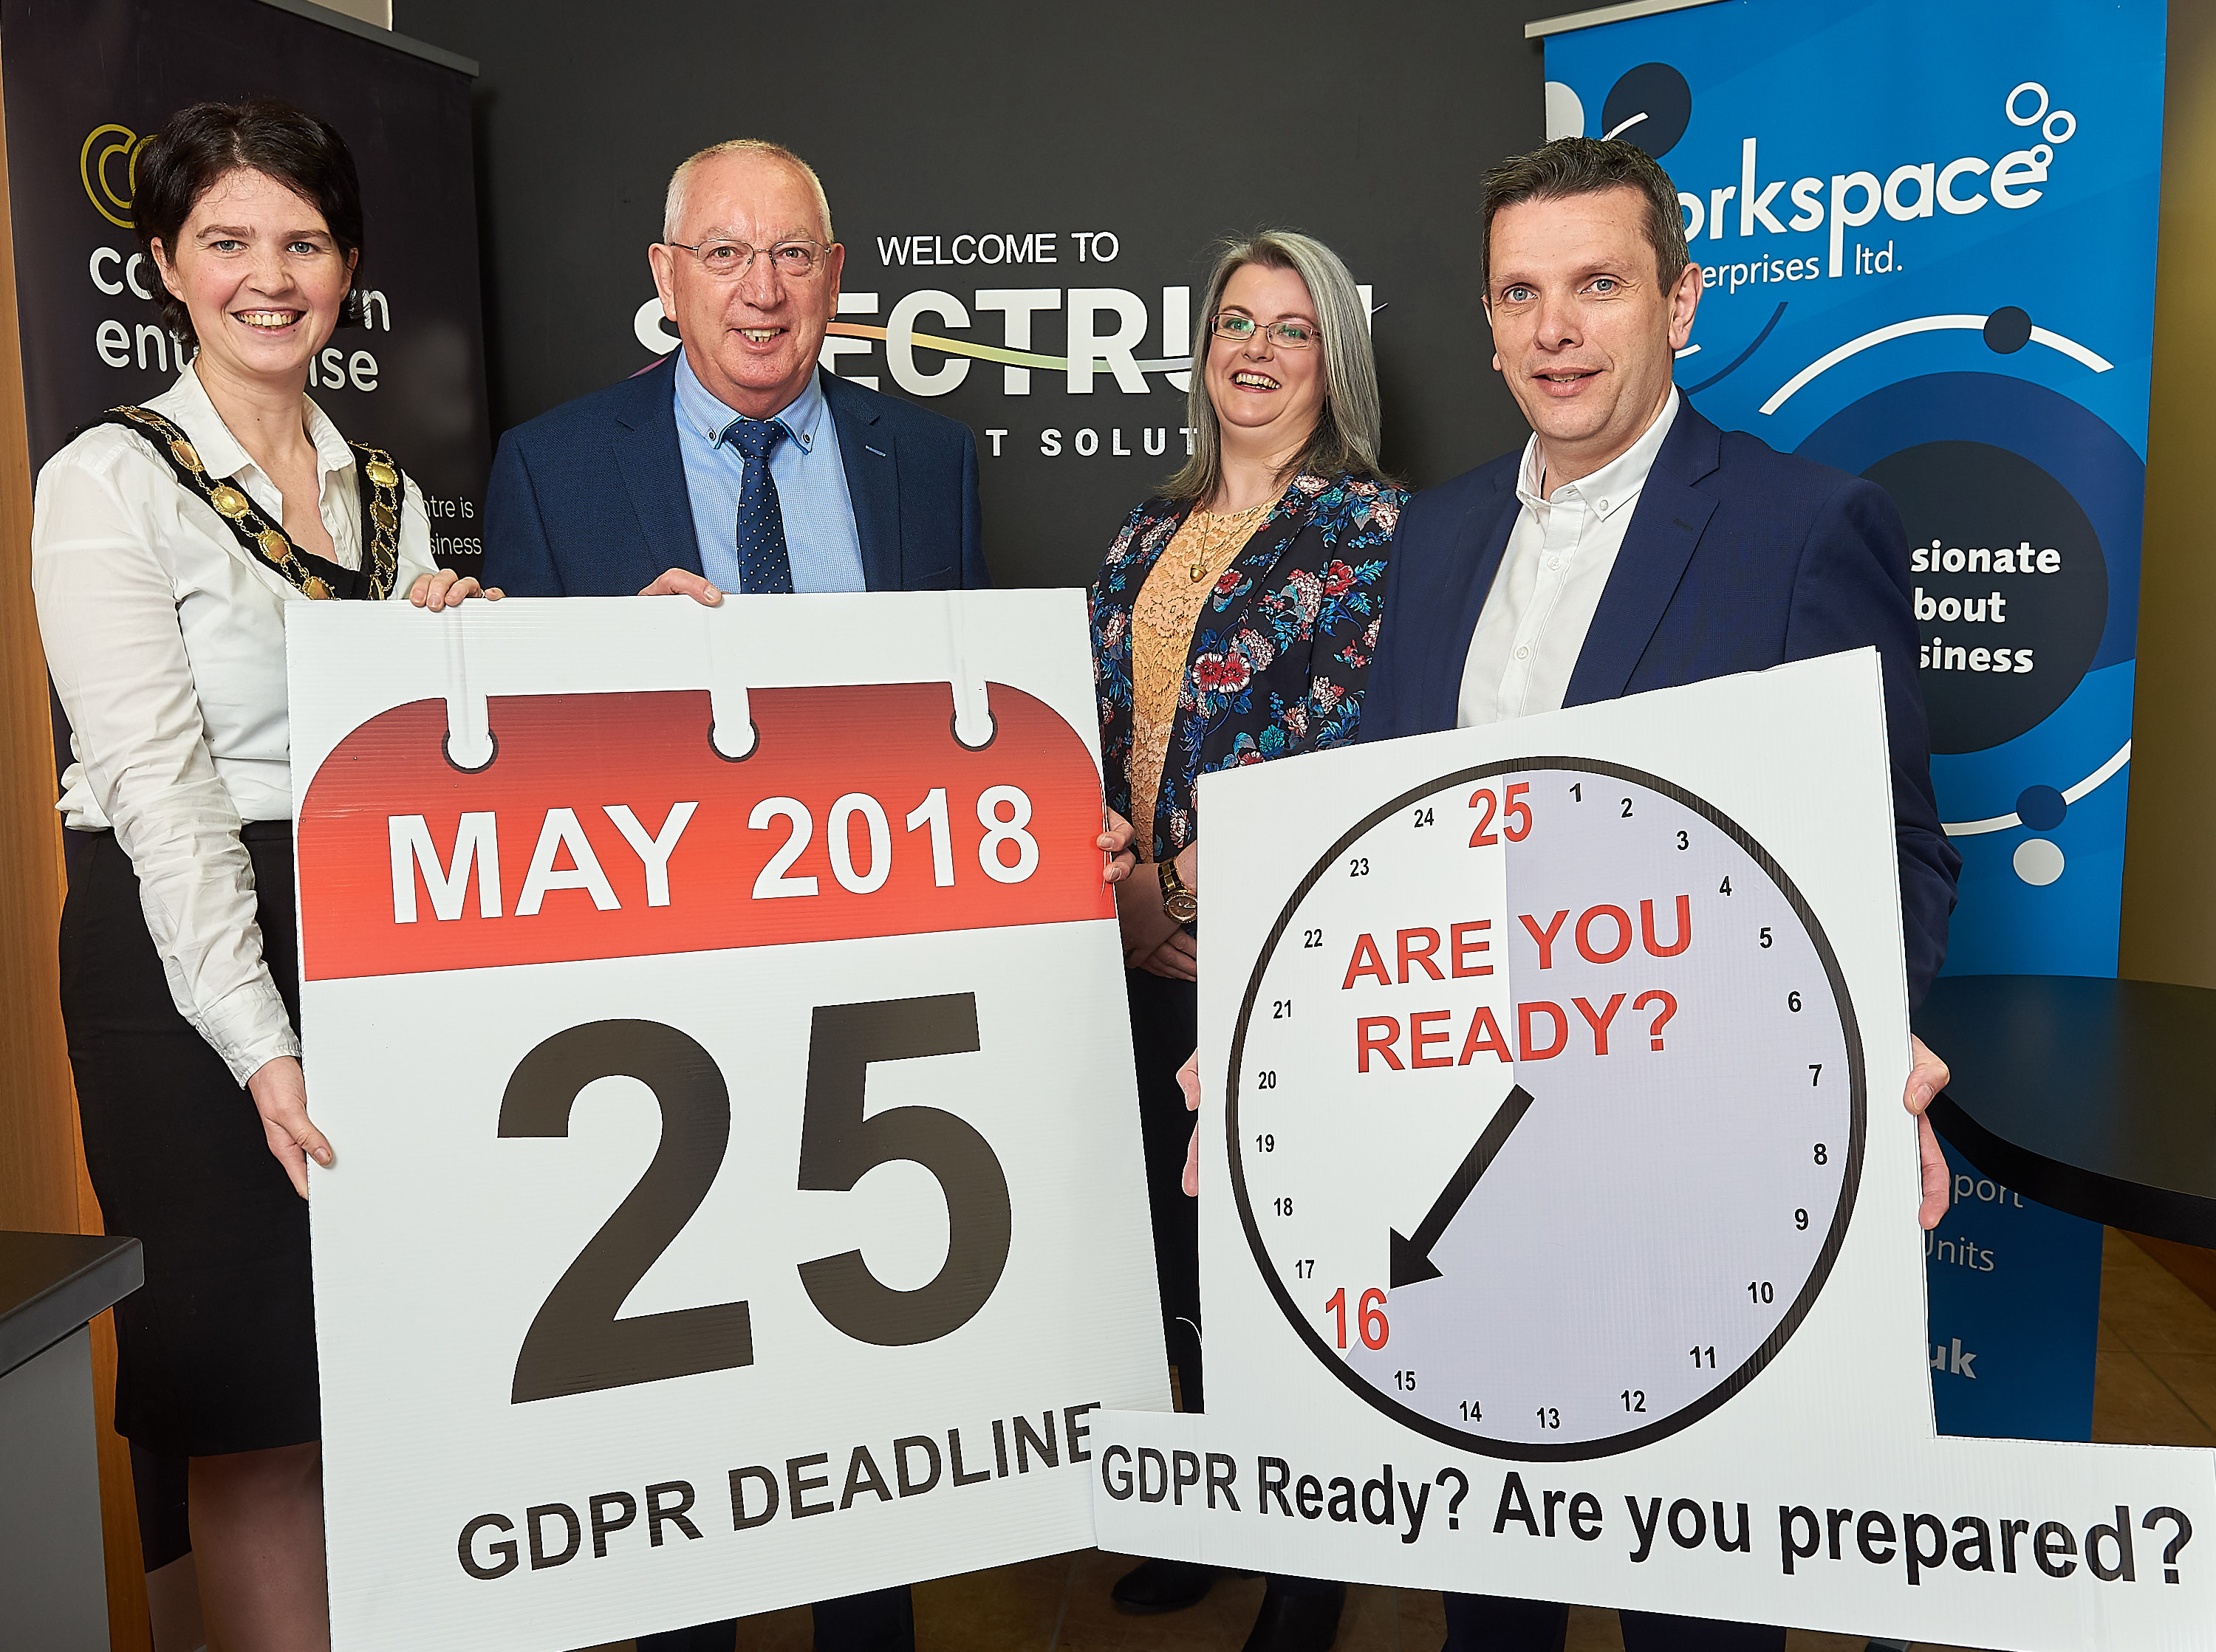 Link to Free Seminar For Small Businesses To Be GDPR-Ready post